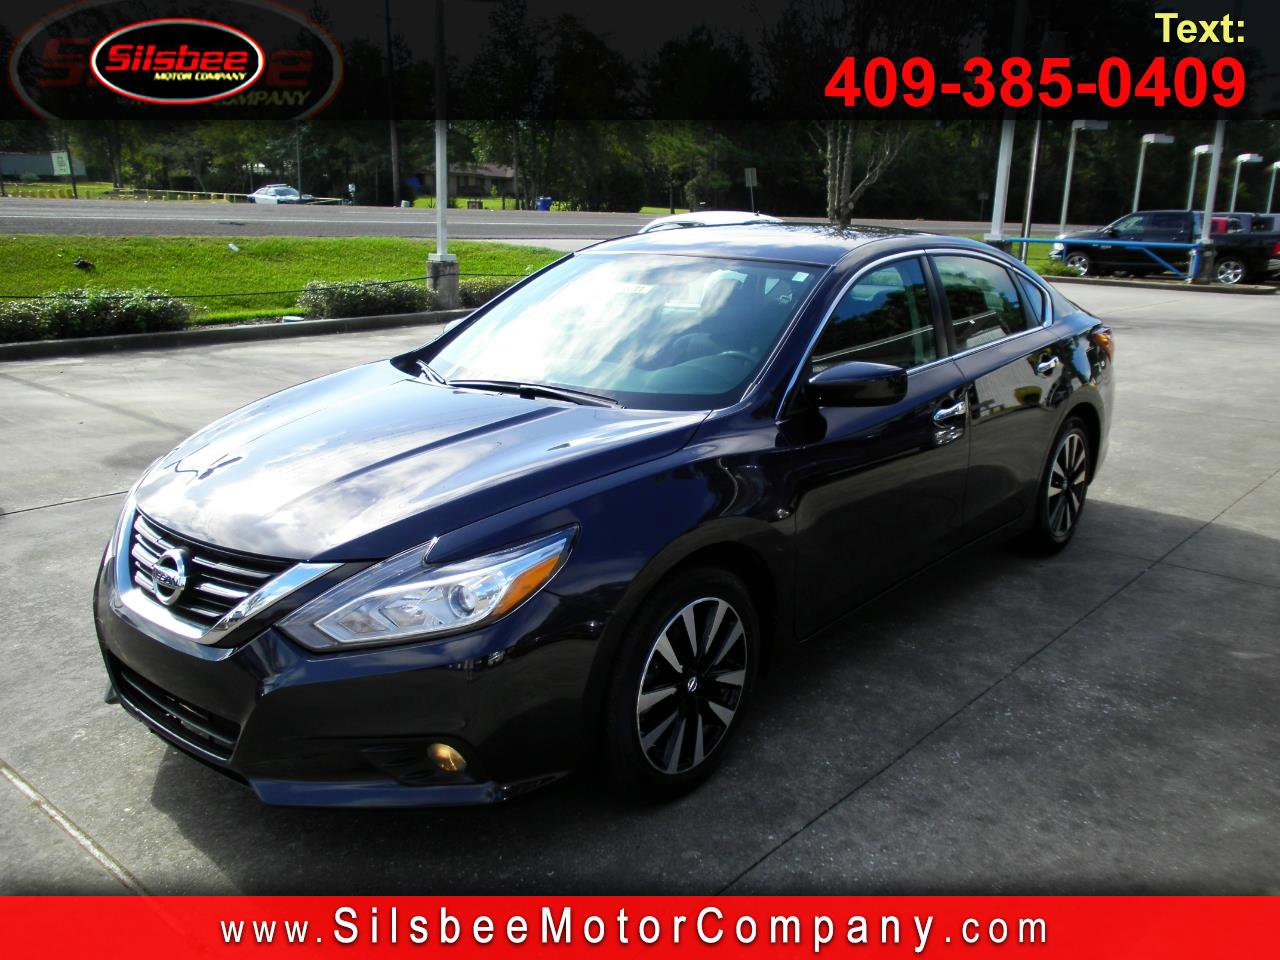 Silsbee Motor Company >> Silsbee Motor Co Silsbee Tx 77656 Car Dealership And